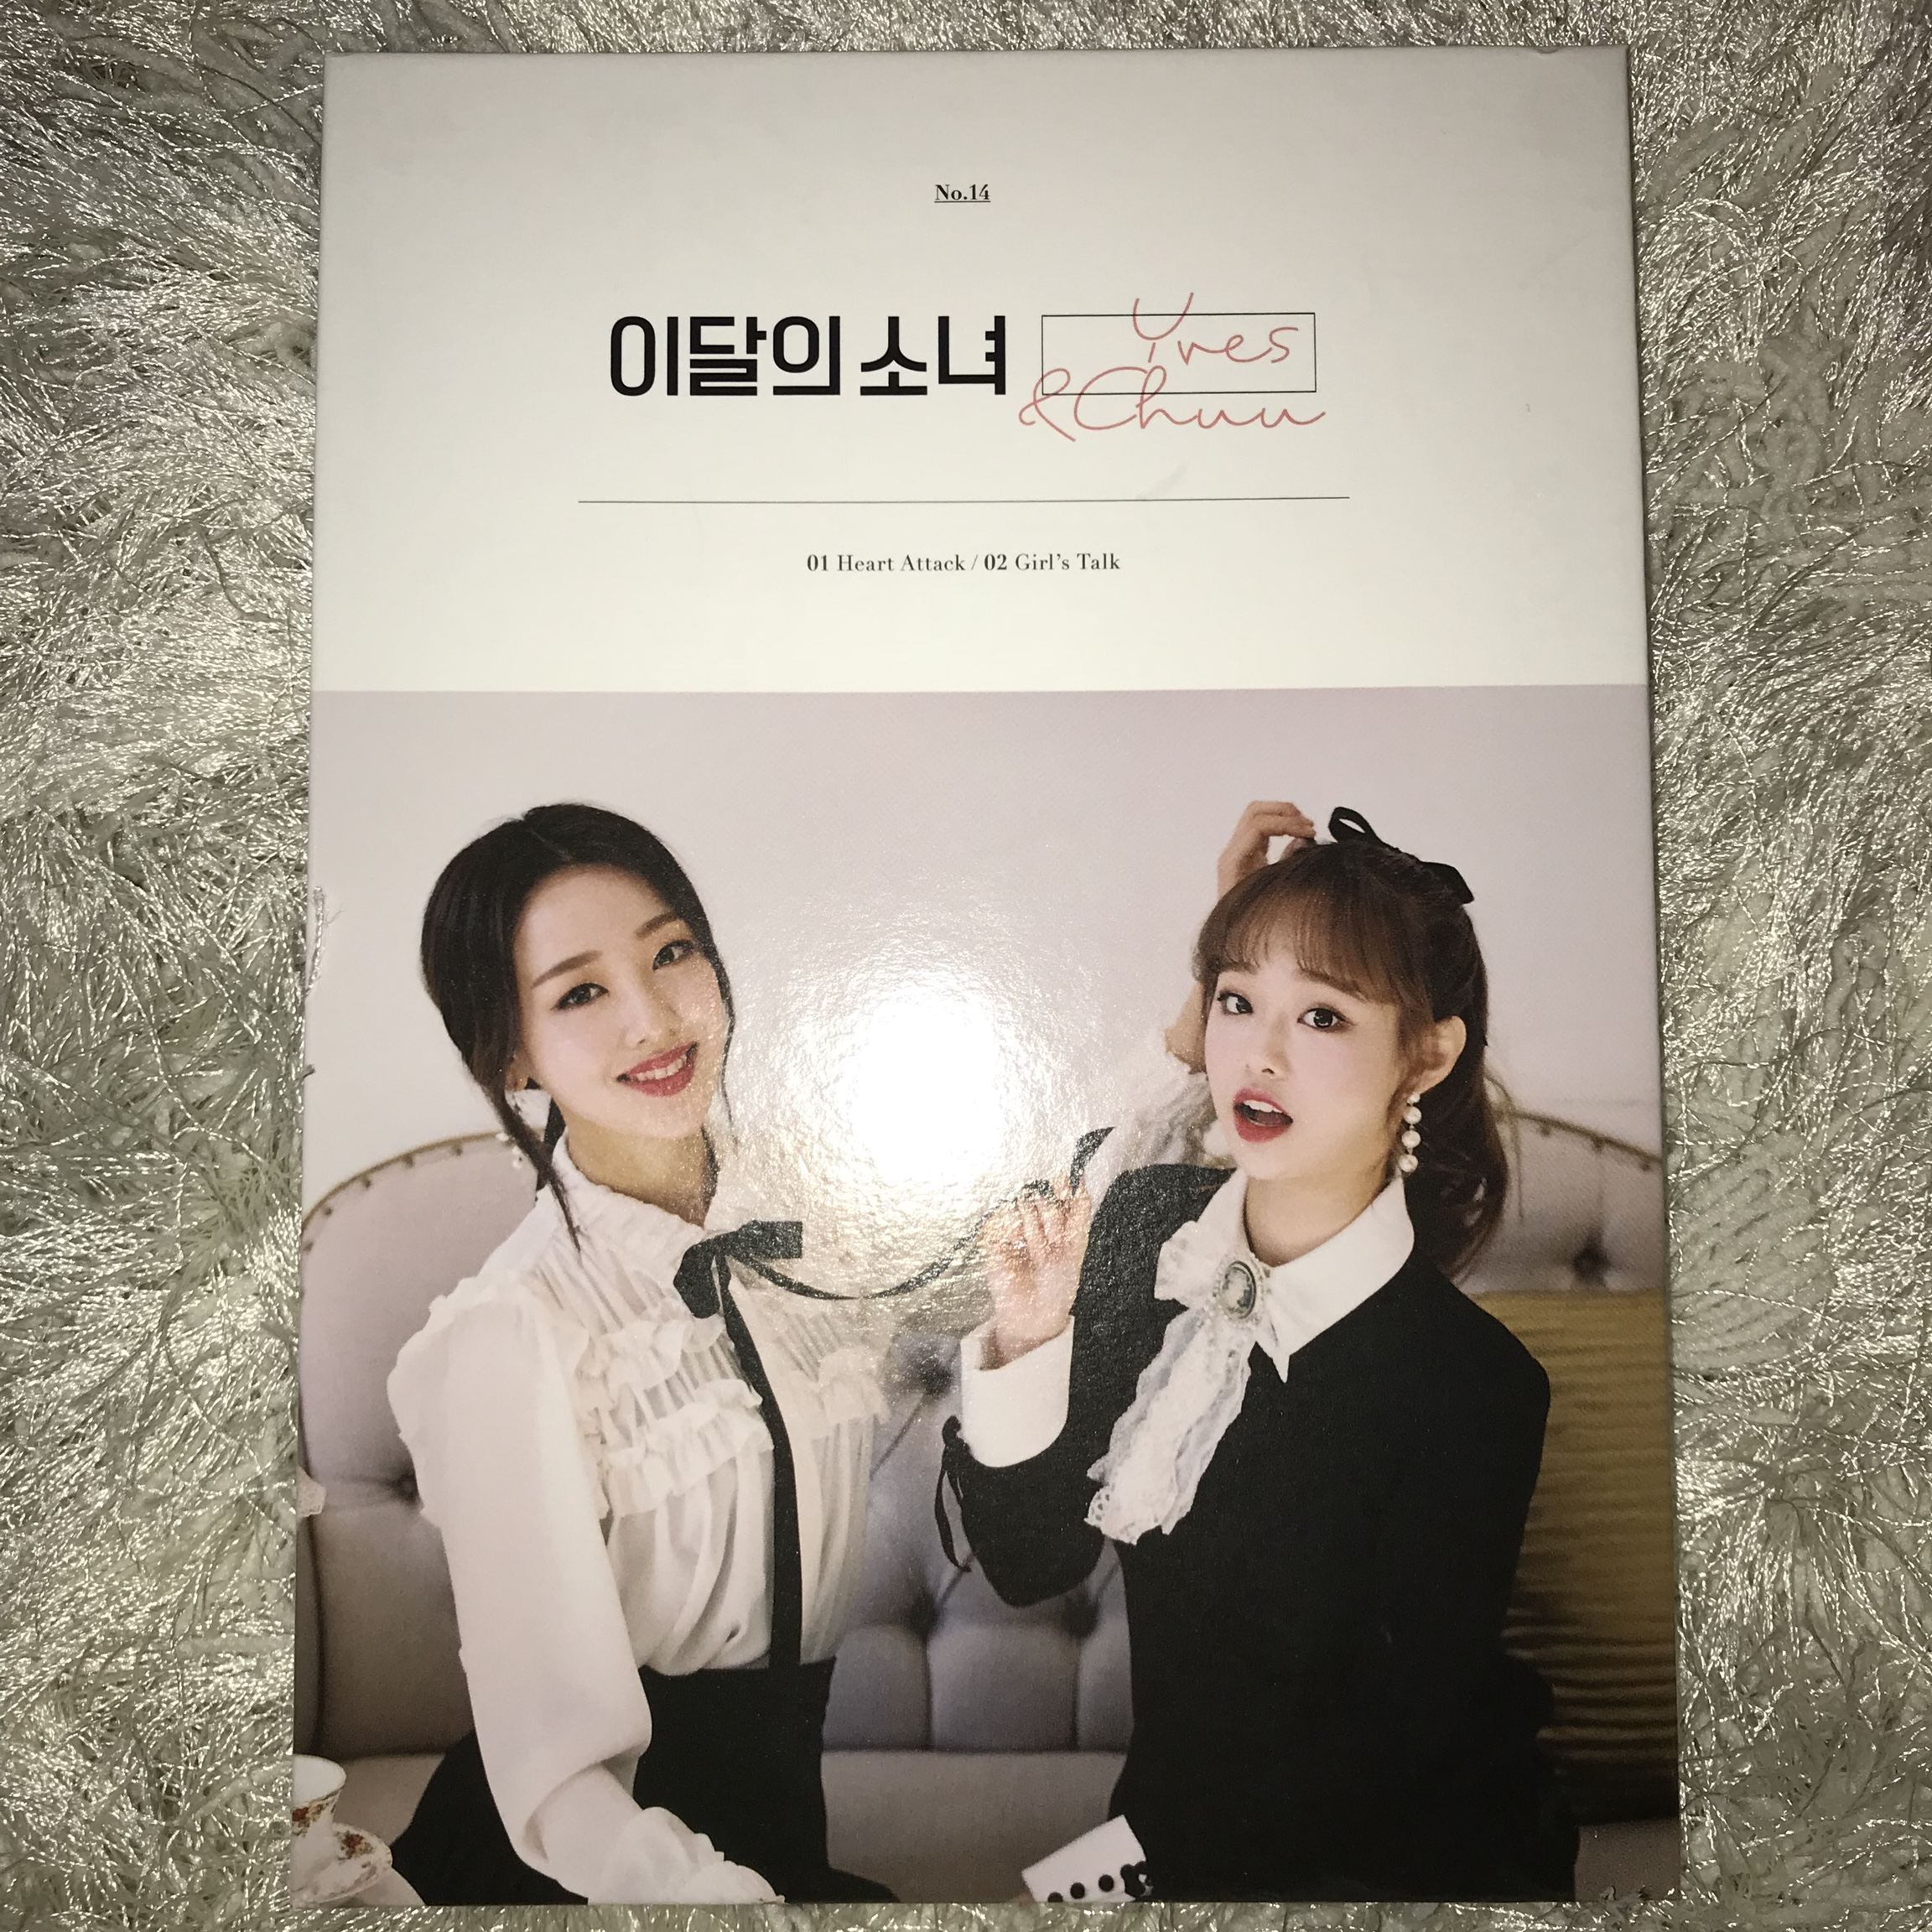 ON HOLD PLEASE DO NOT BUY] loona chuu single album    - Depop